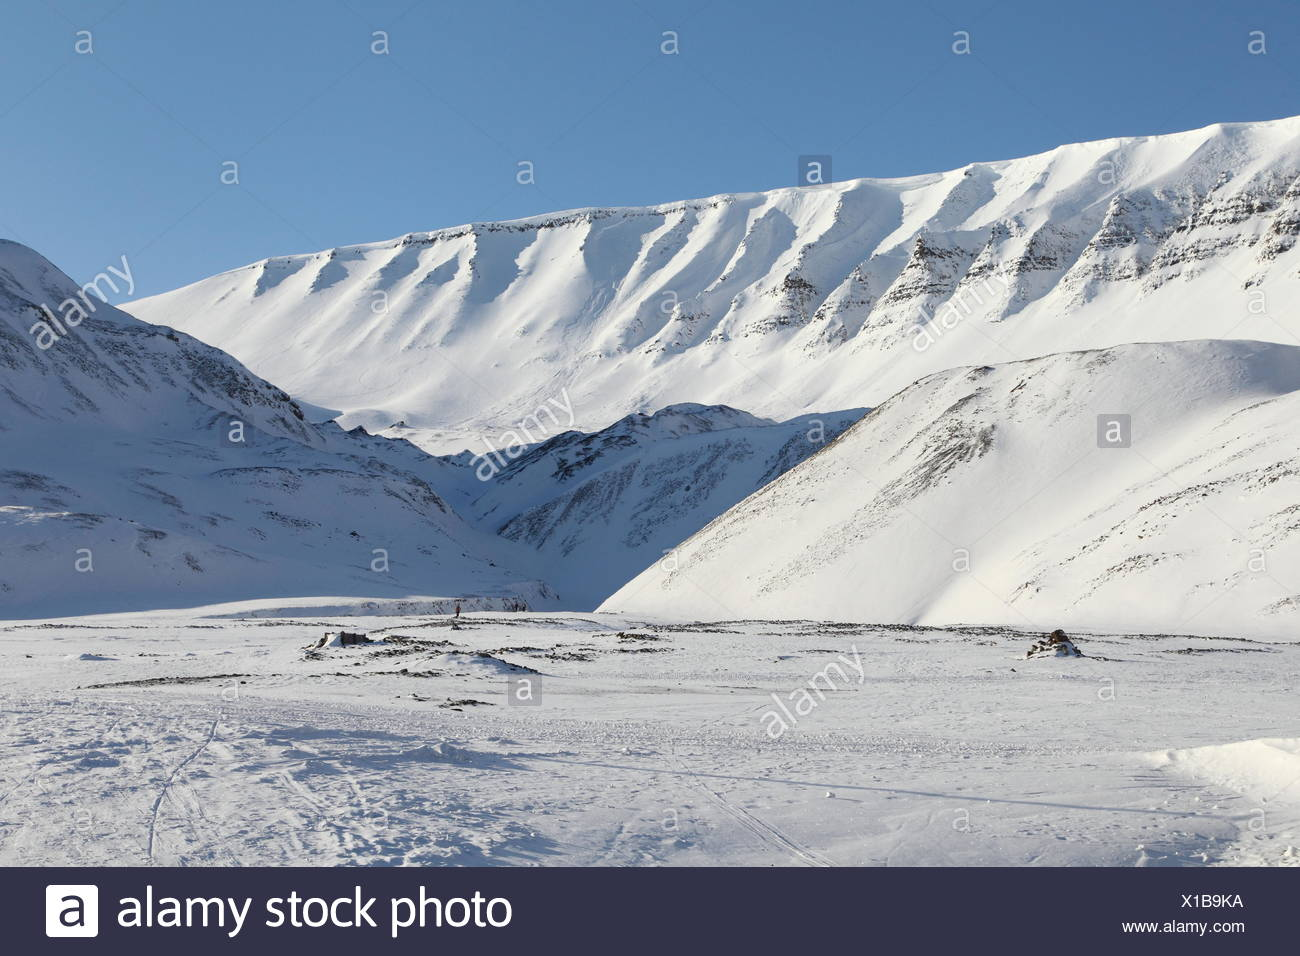 Snow-covered mountains near Longyearbyen - Stock Image